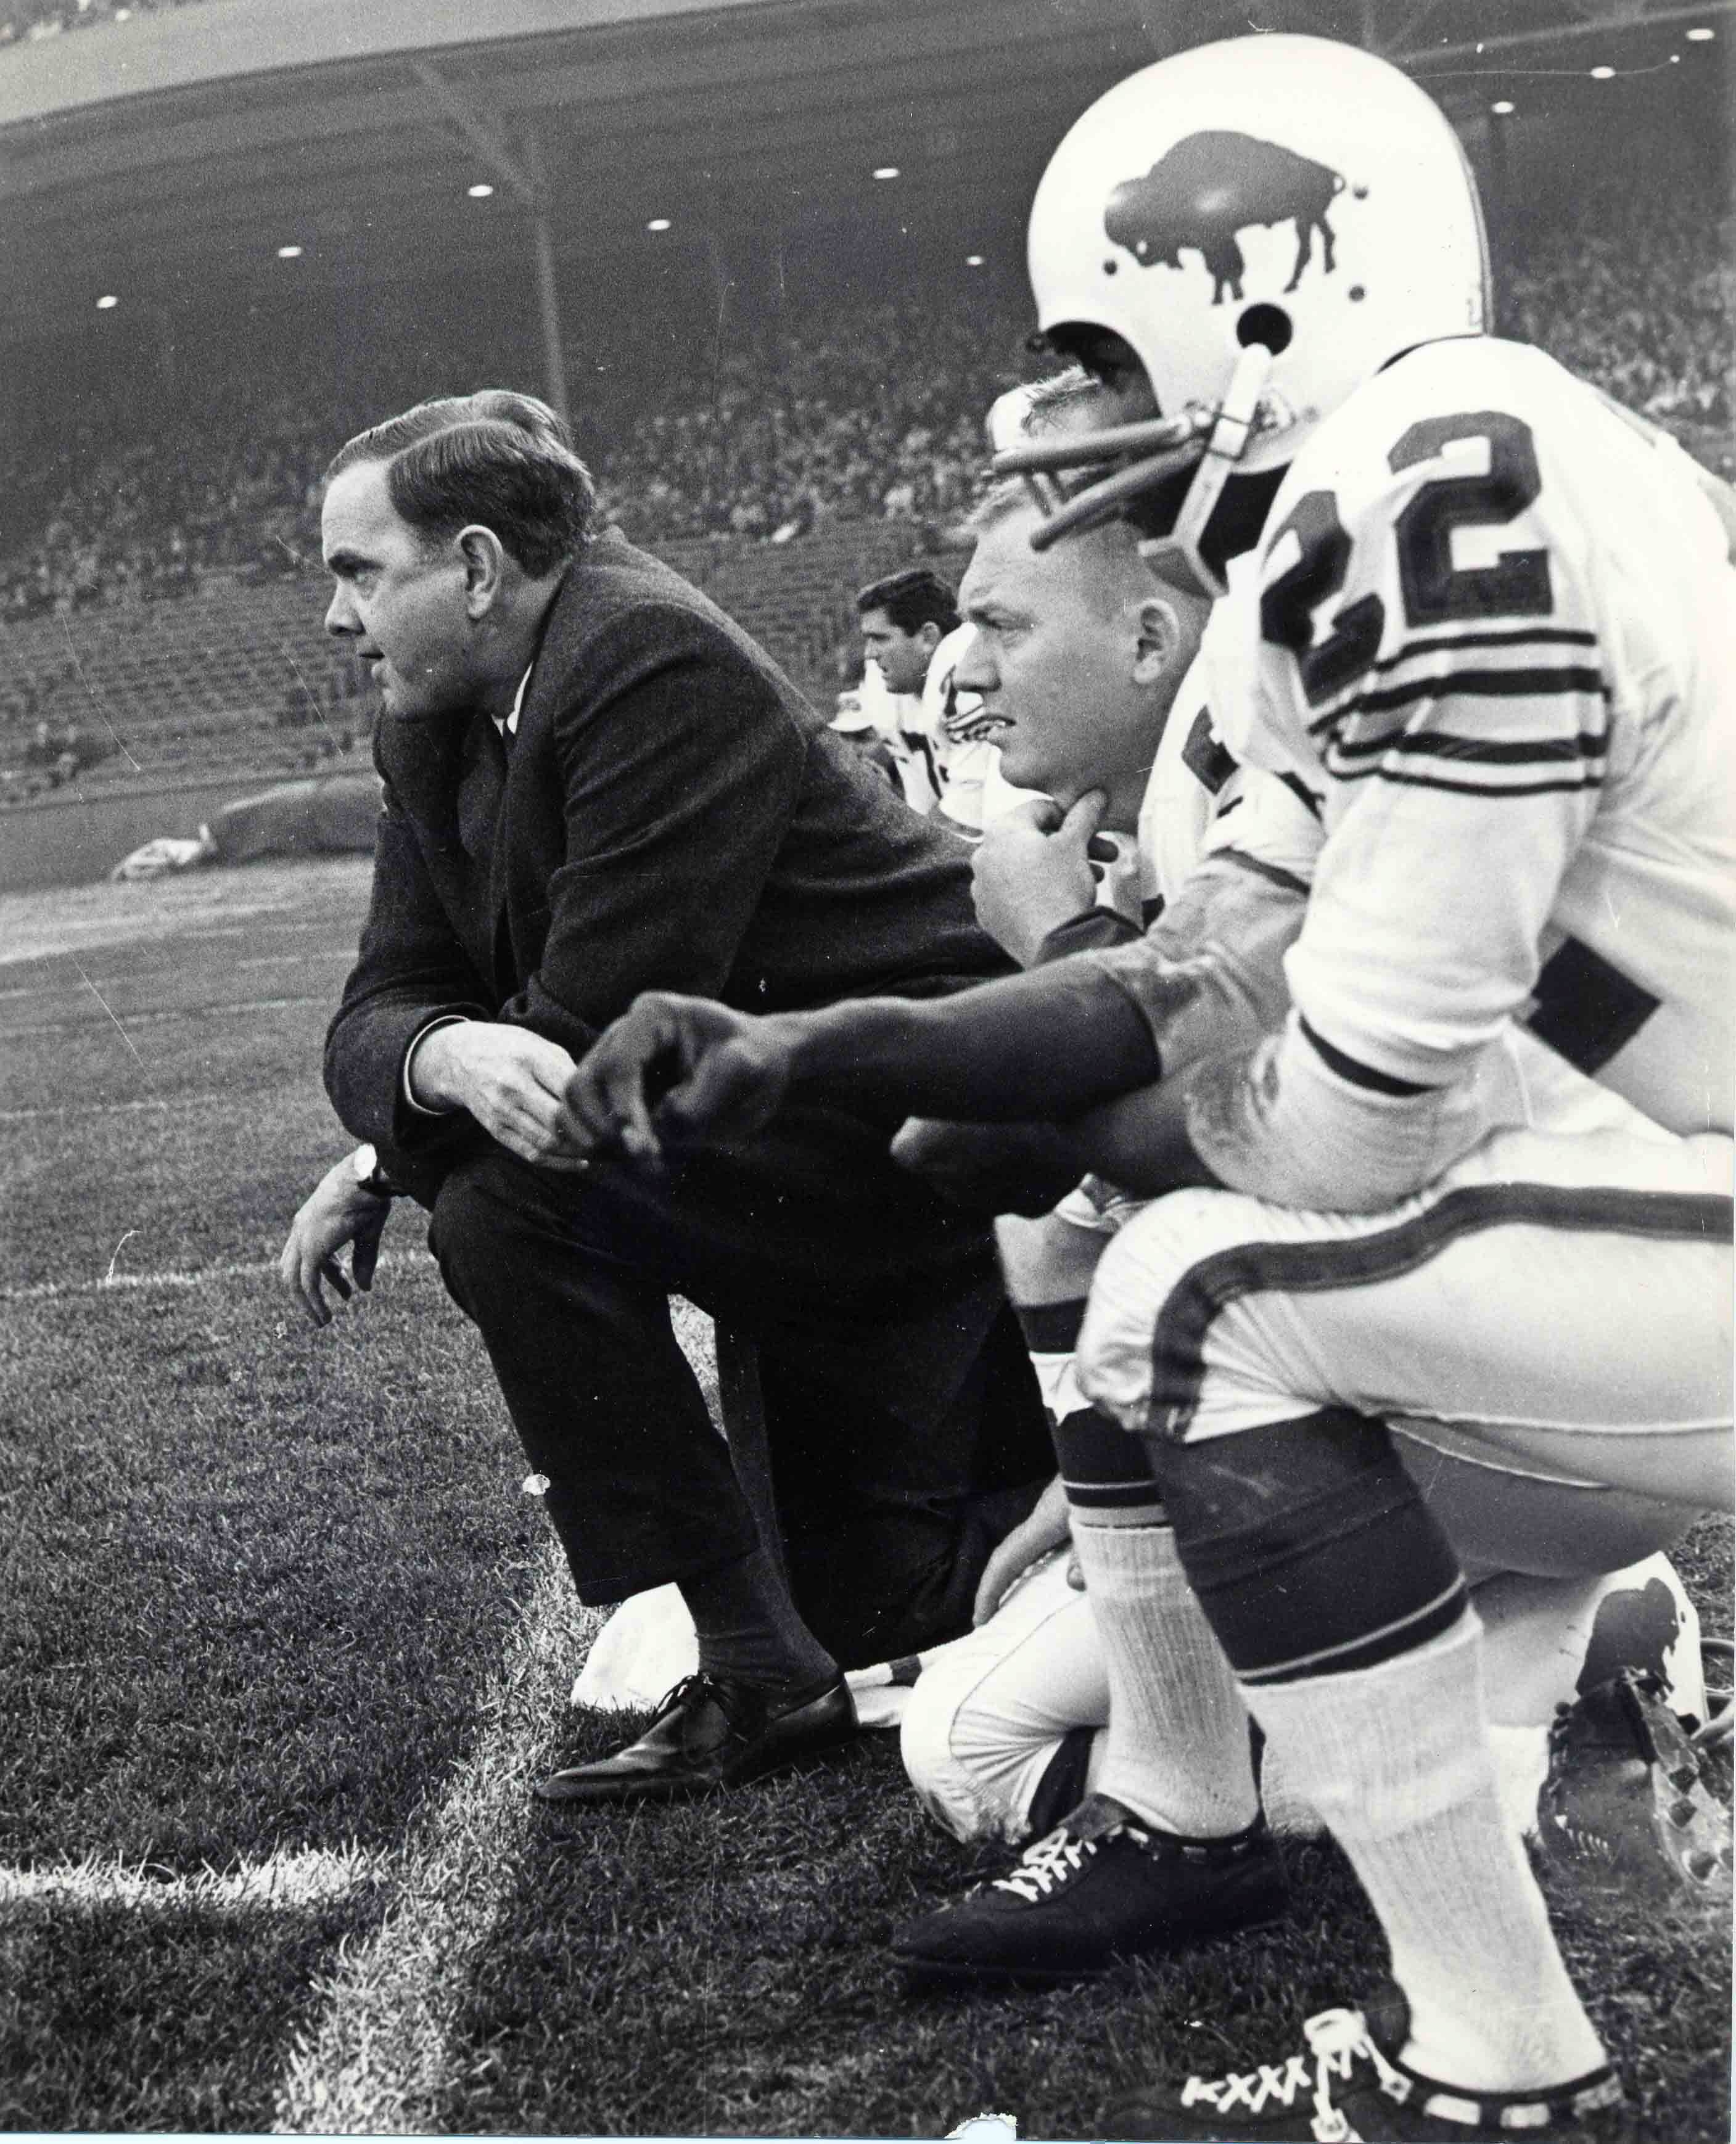 I often wished I had covered Wilson in the early days of the franchise, when he was a much younger man. I envied the late Larry Felser, who covered the Bills from the start, when the AFL was in its infancy and pro football was just beginning to take a hold in America.